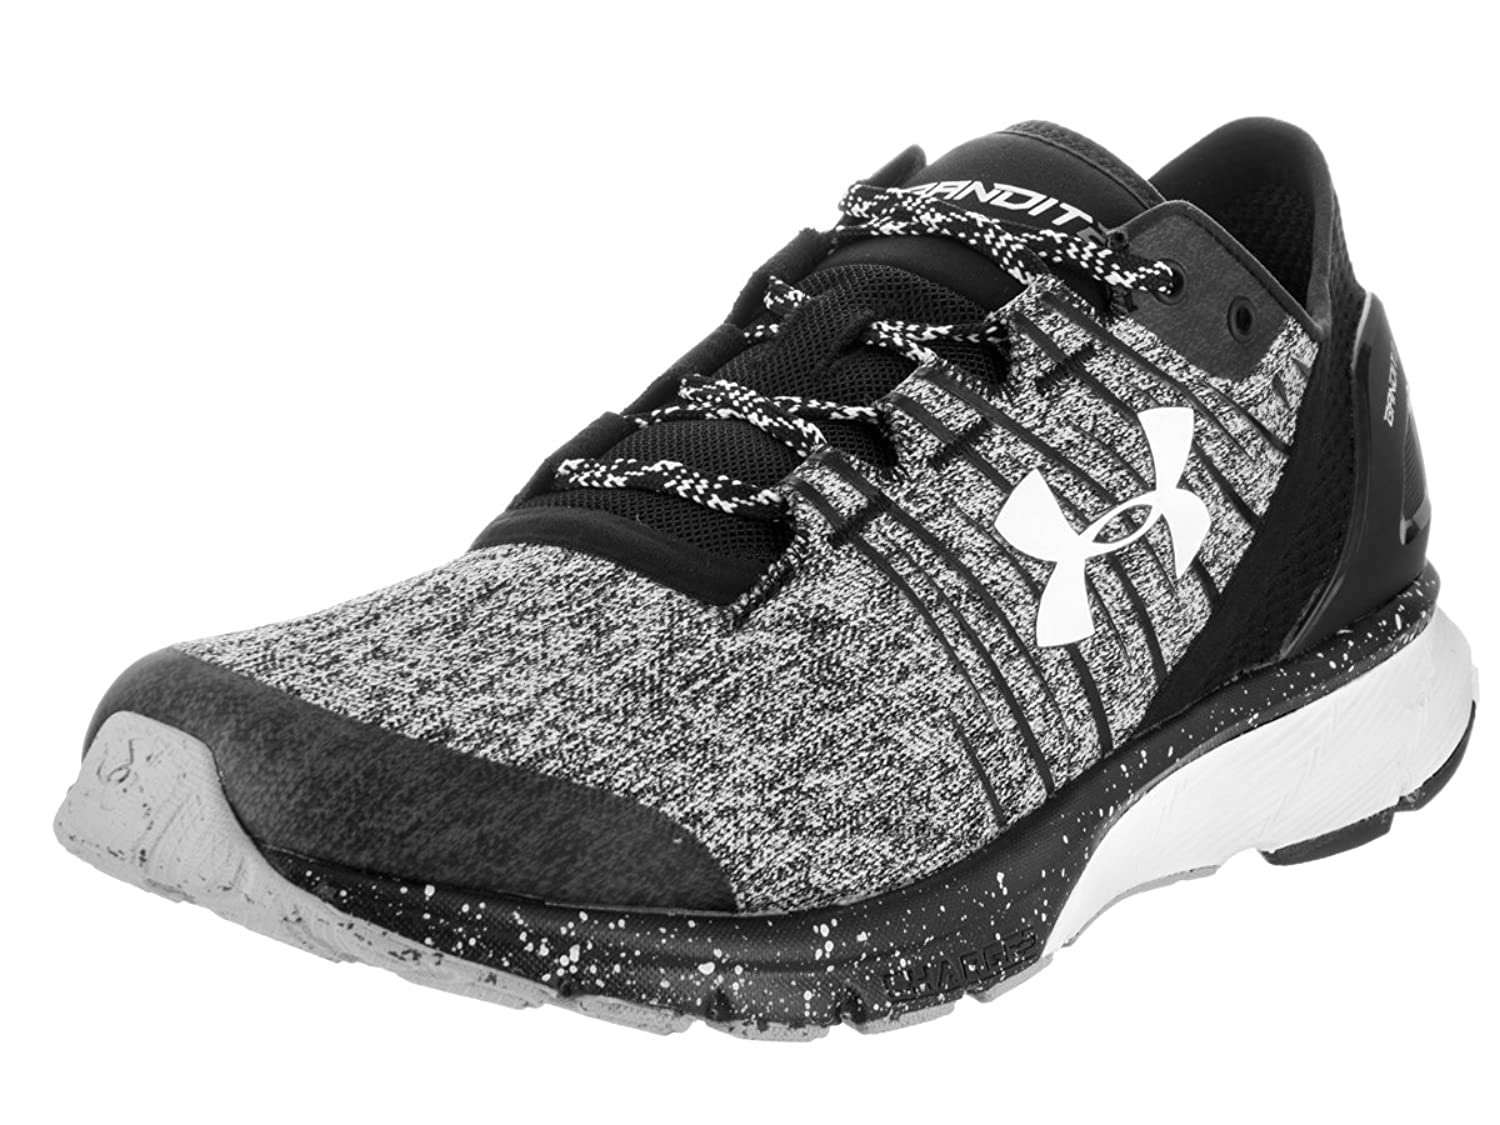 Under Armour Men's Charged Bandit 2 Running Shoes B07C8RDJ69 8.5 D(M) US